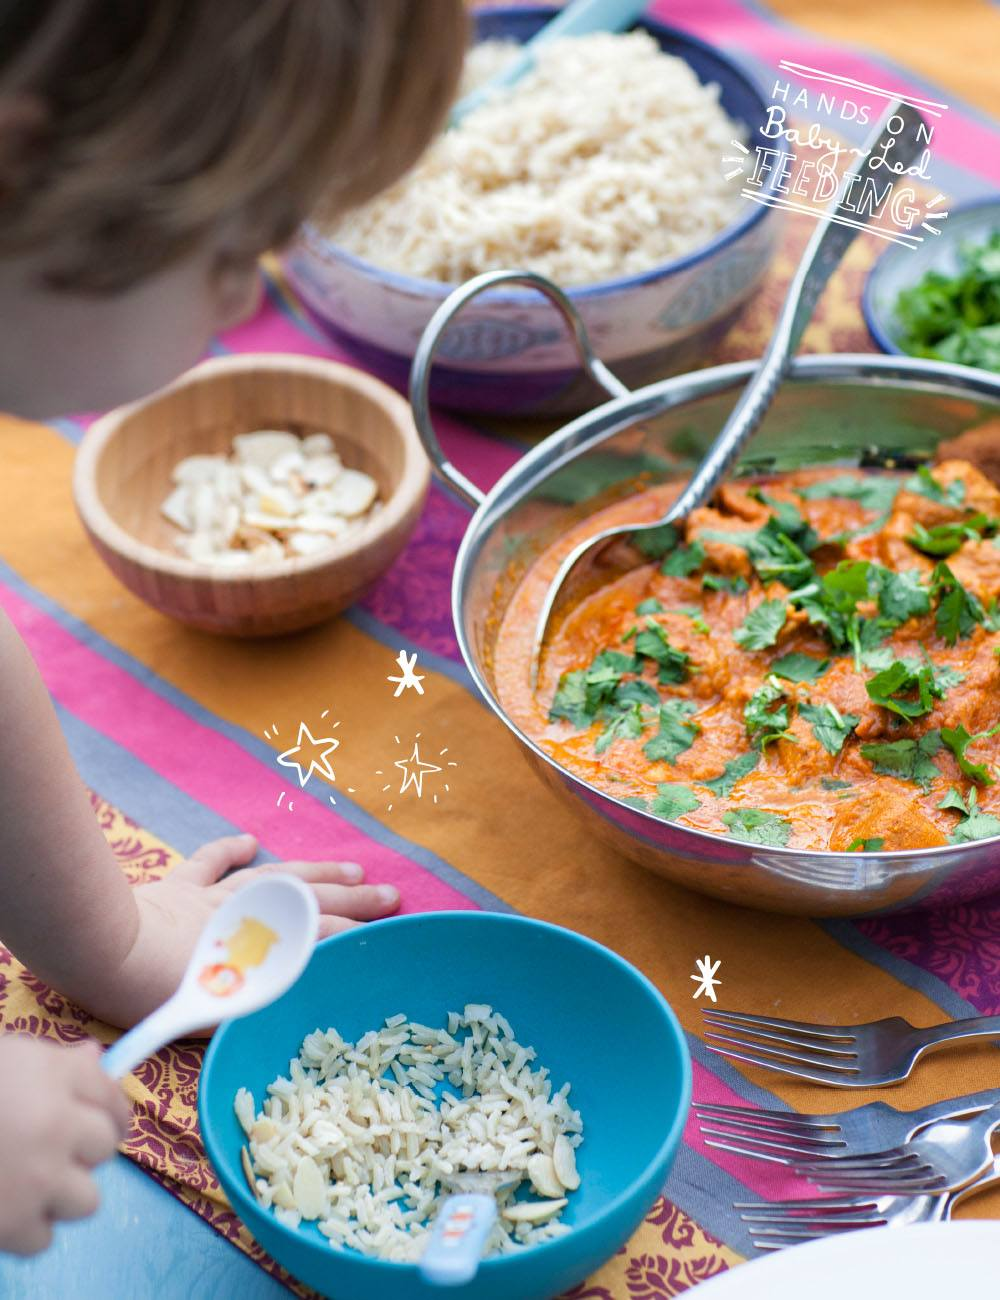 Baby Led Feeding Healthy Chicken Tikka Masala Introducing your baby to spices. Homemade Baby led weaning Recipes.